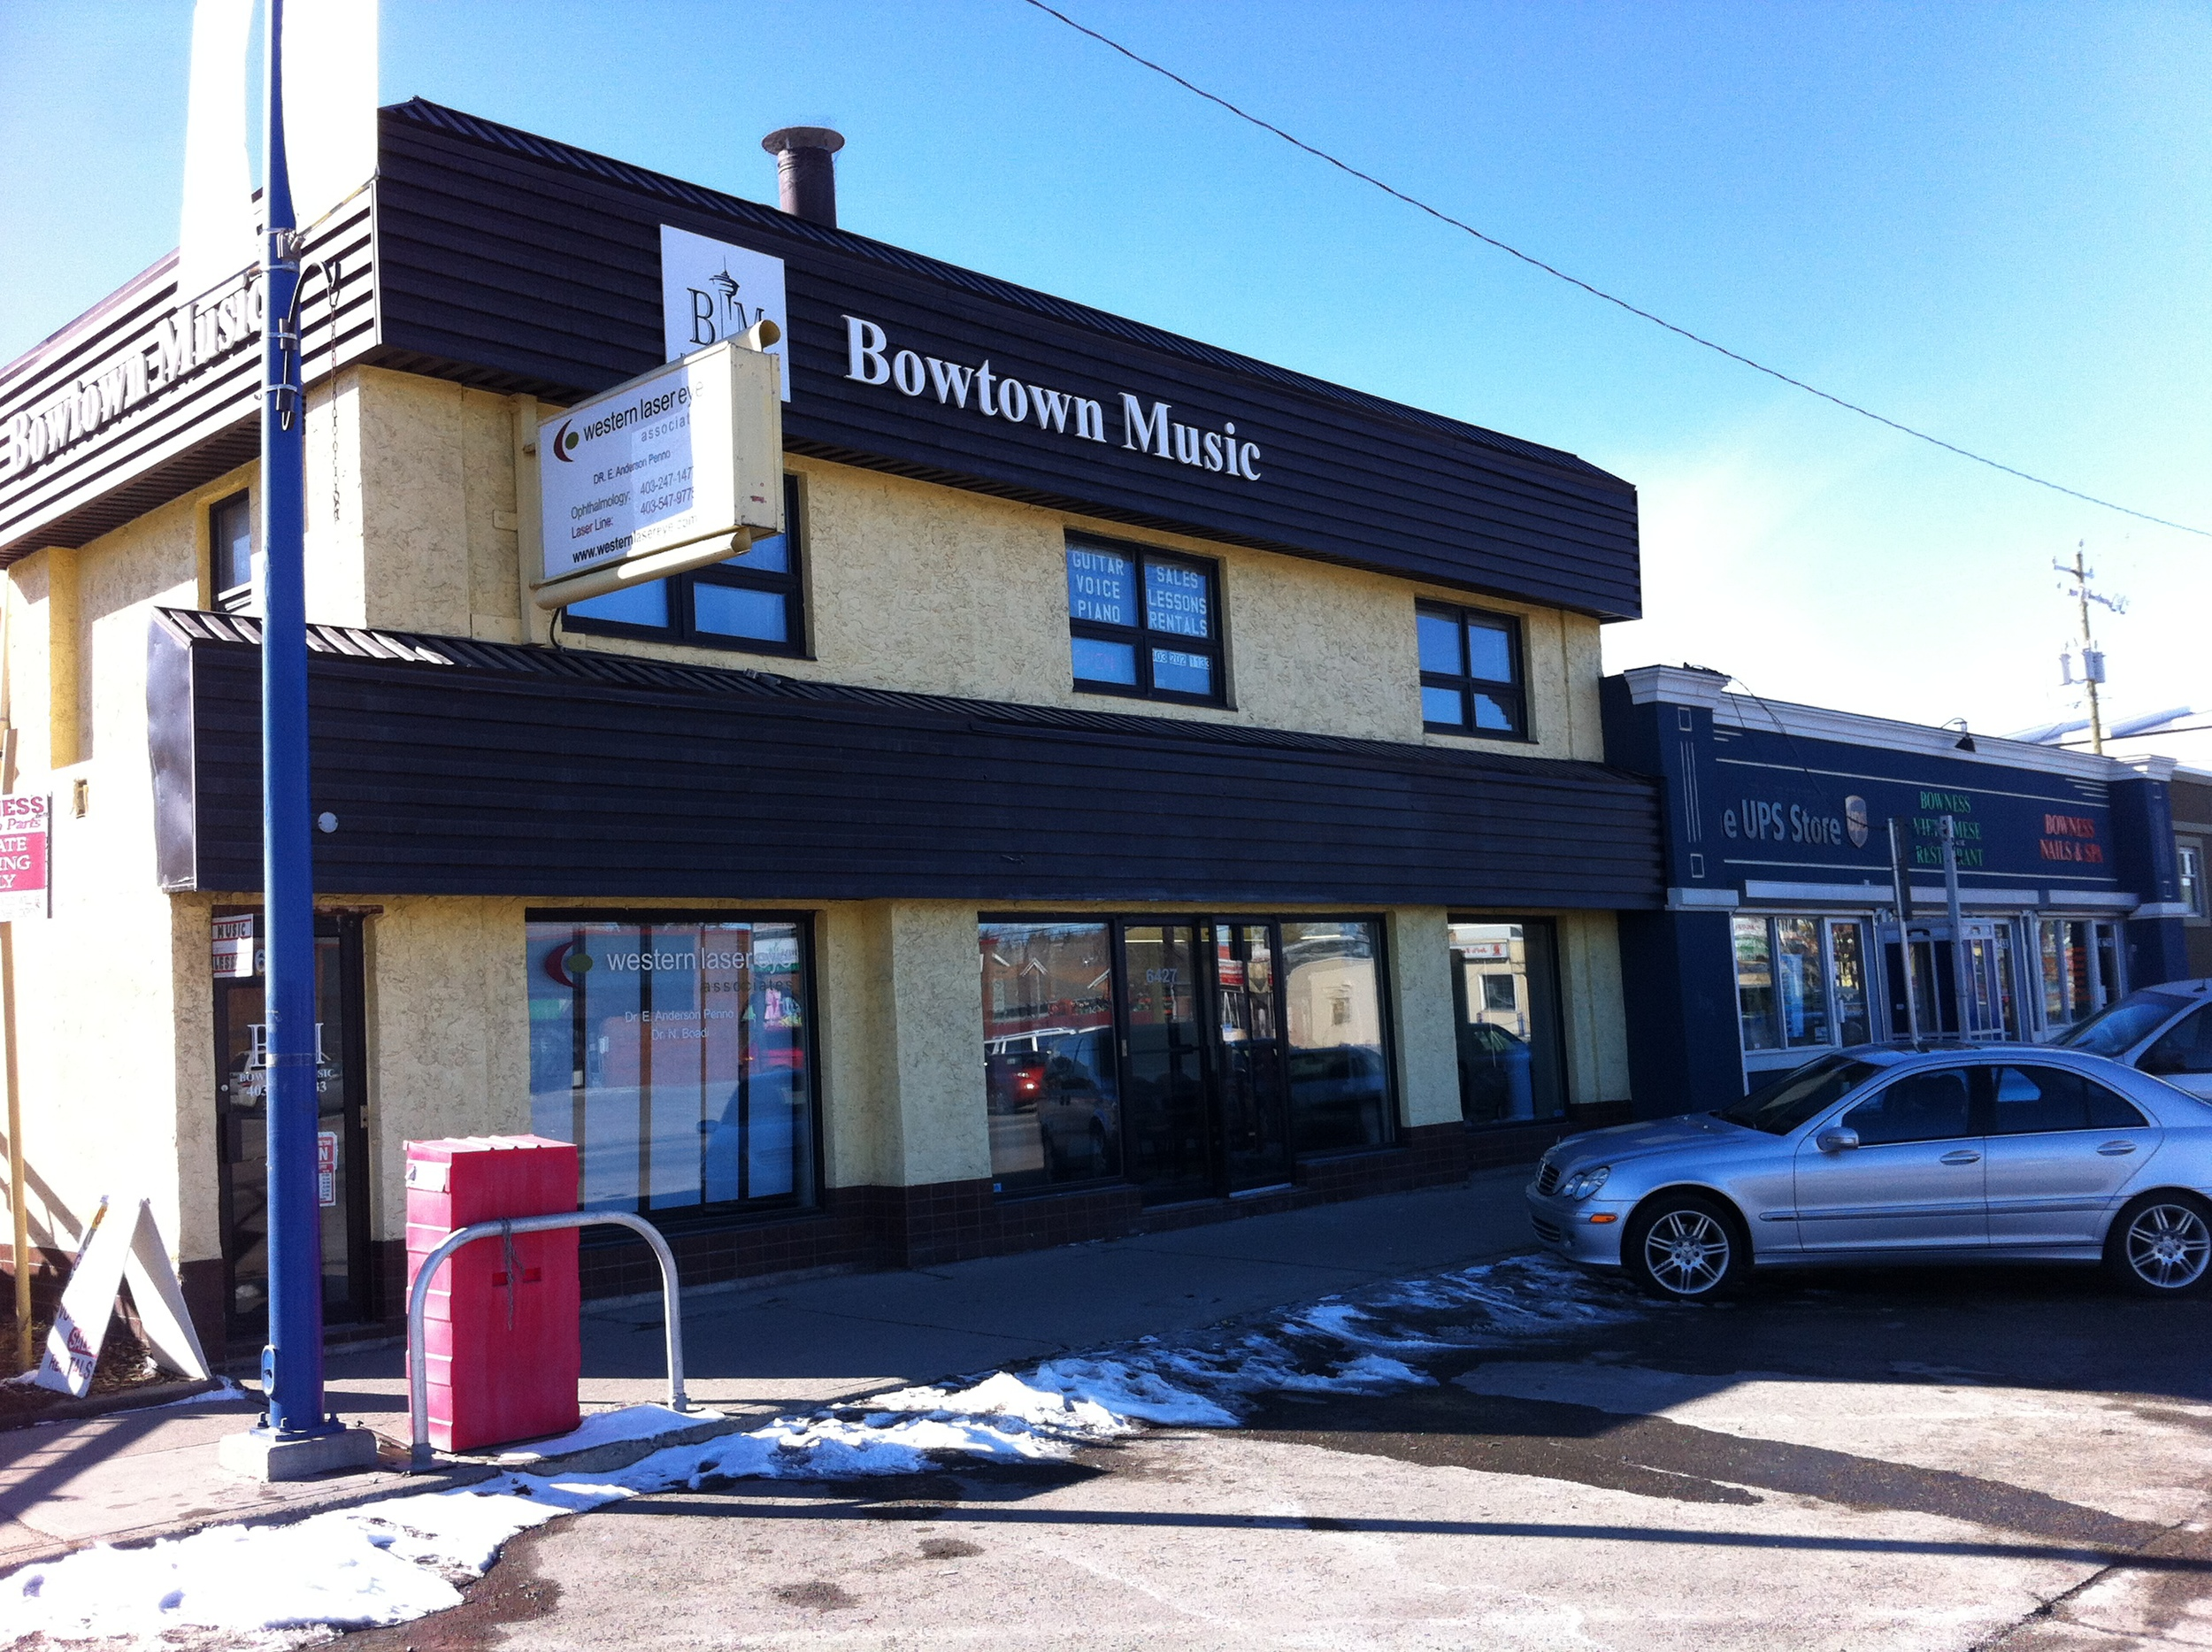 Bowness has an existing Main Street, complete with angle parking. The goal is to enhance the street with more shops, cafes, restaurants,residential and office development.